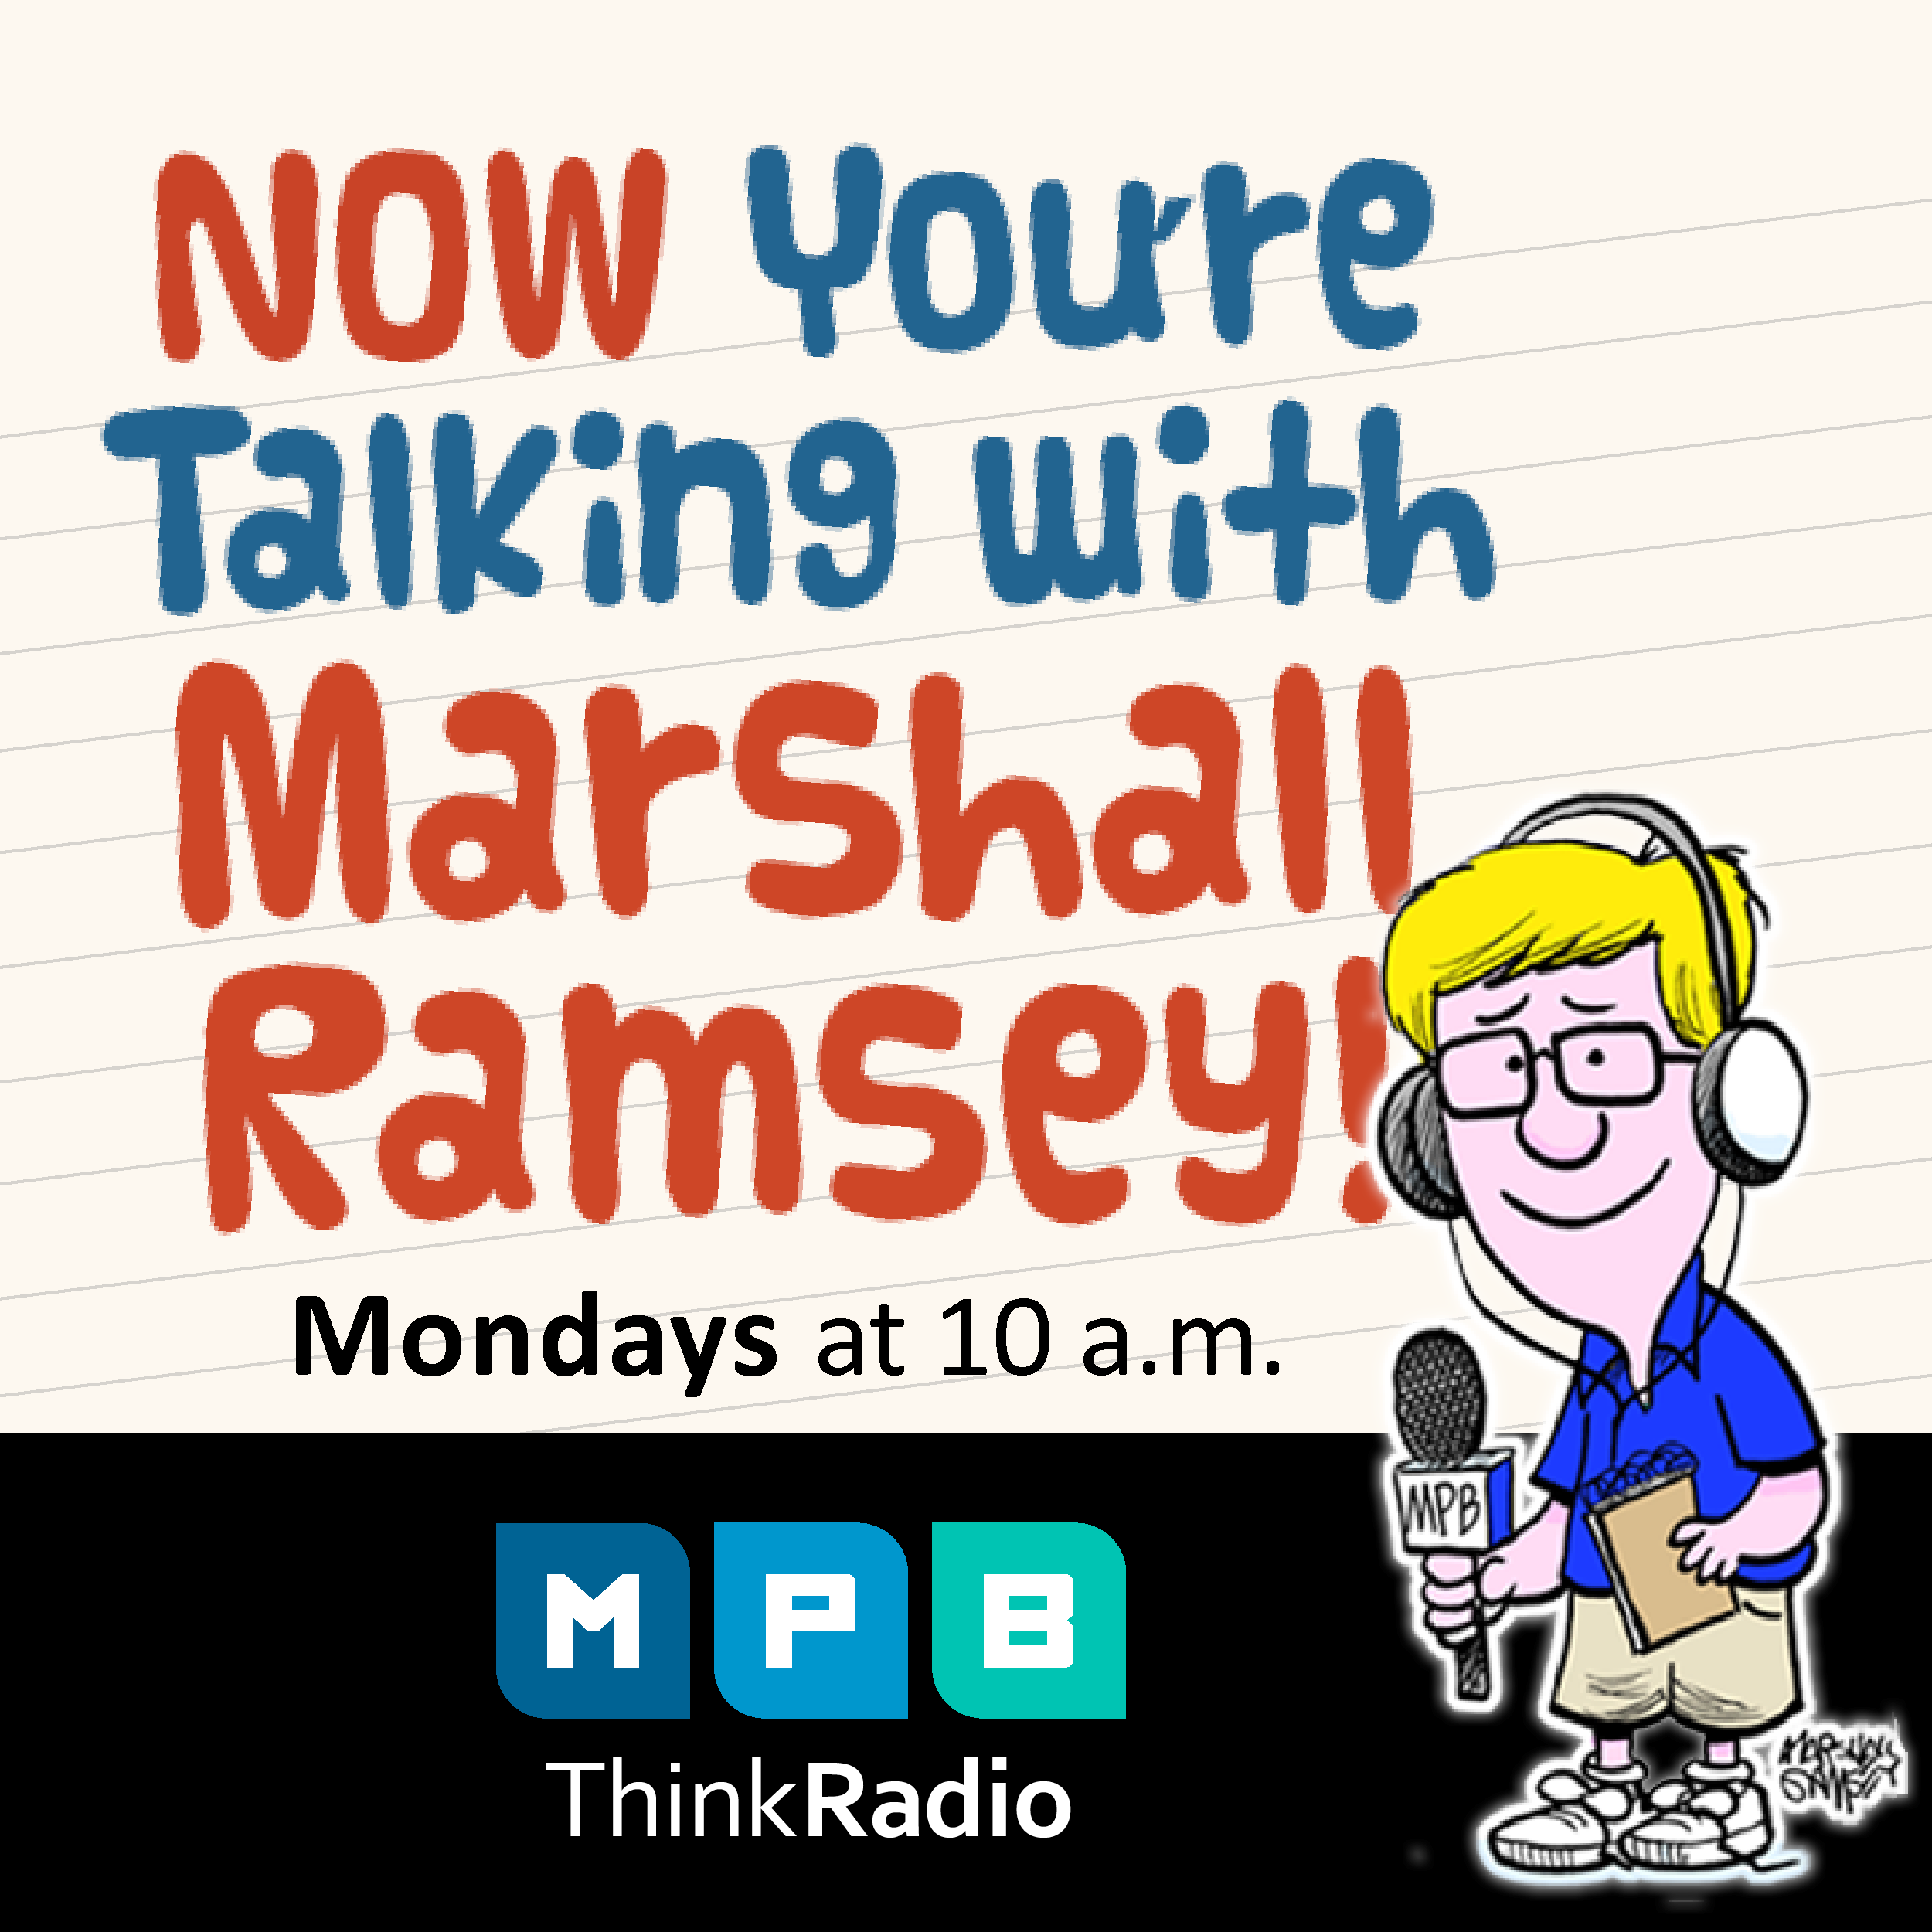 Listen to Now You're Talking every Monday at 10 a.m. on MPB Think Radio